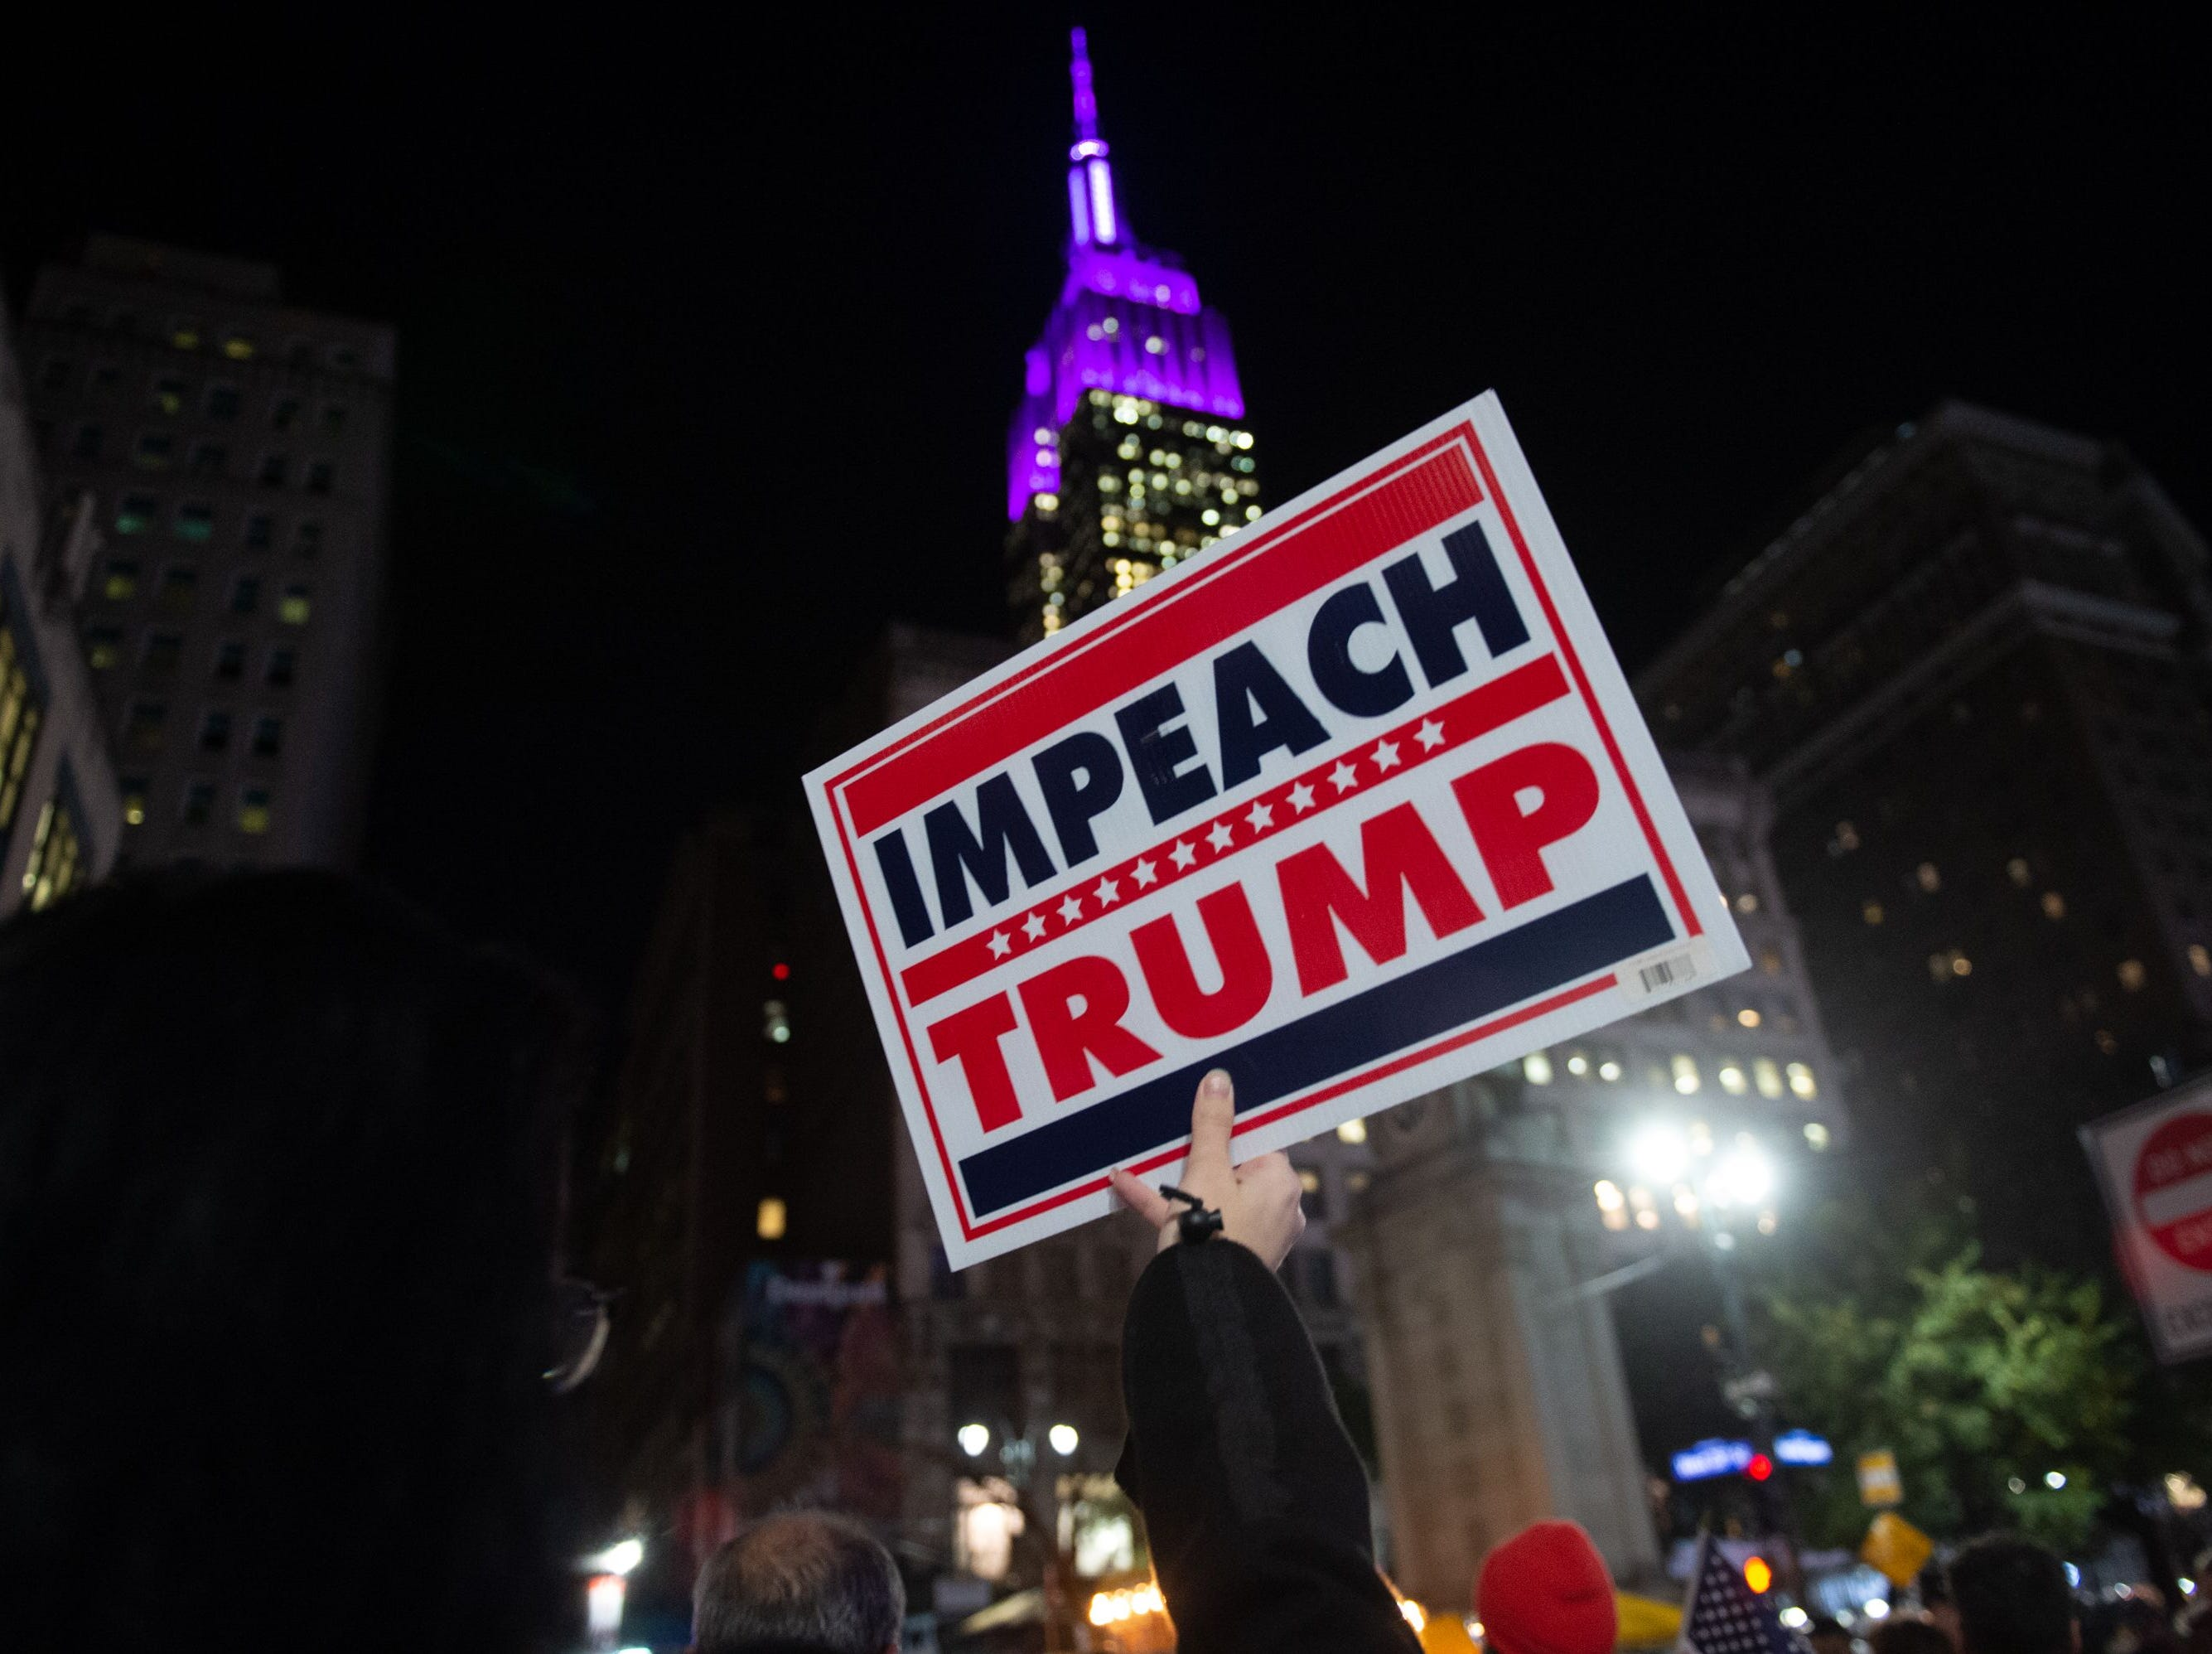 People protest and march against US President Donald Trump's alleged interference in Robert Mueller investigation in New York City on November 8, 2018. - President Donald Trump was accused on November 8, 2018, of pushing America toward a constitutional crisis after his firing of the attorney general cast doubt over the future of an explosive probe into election collusion with Russian agents.